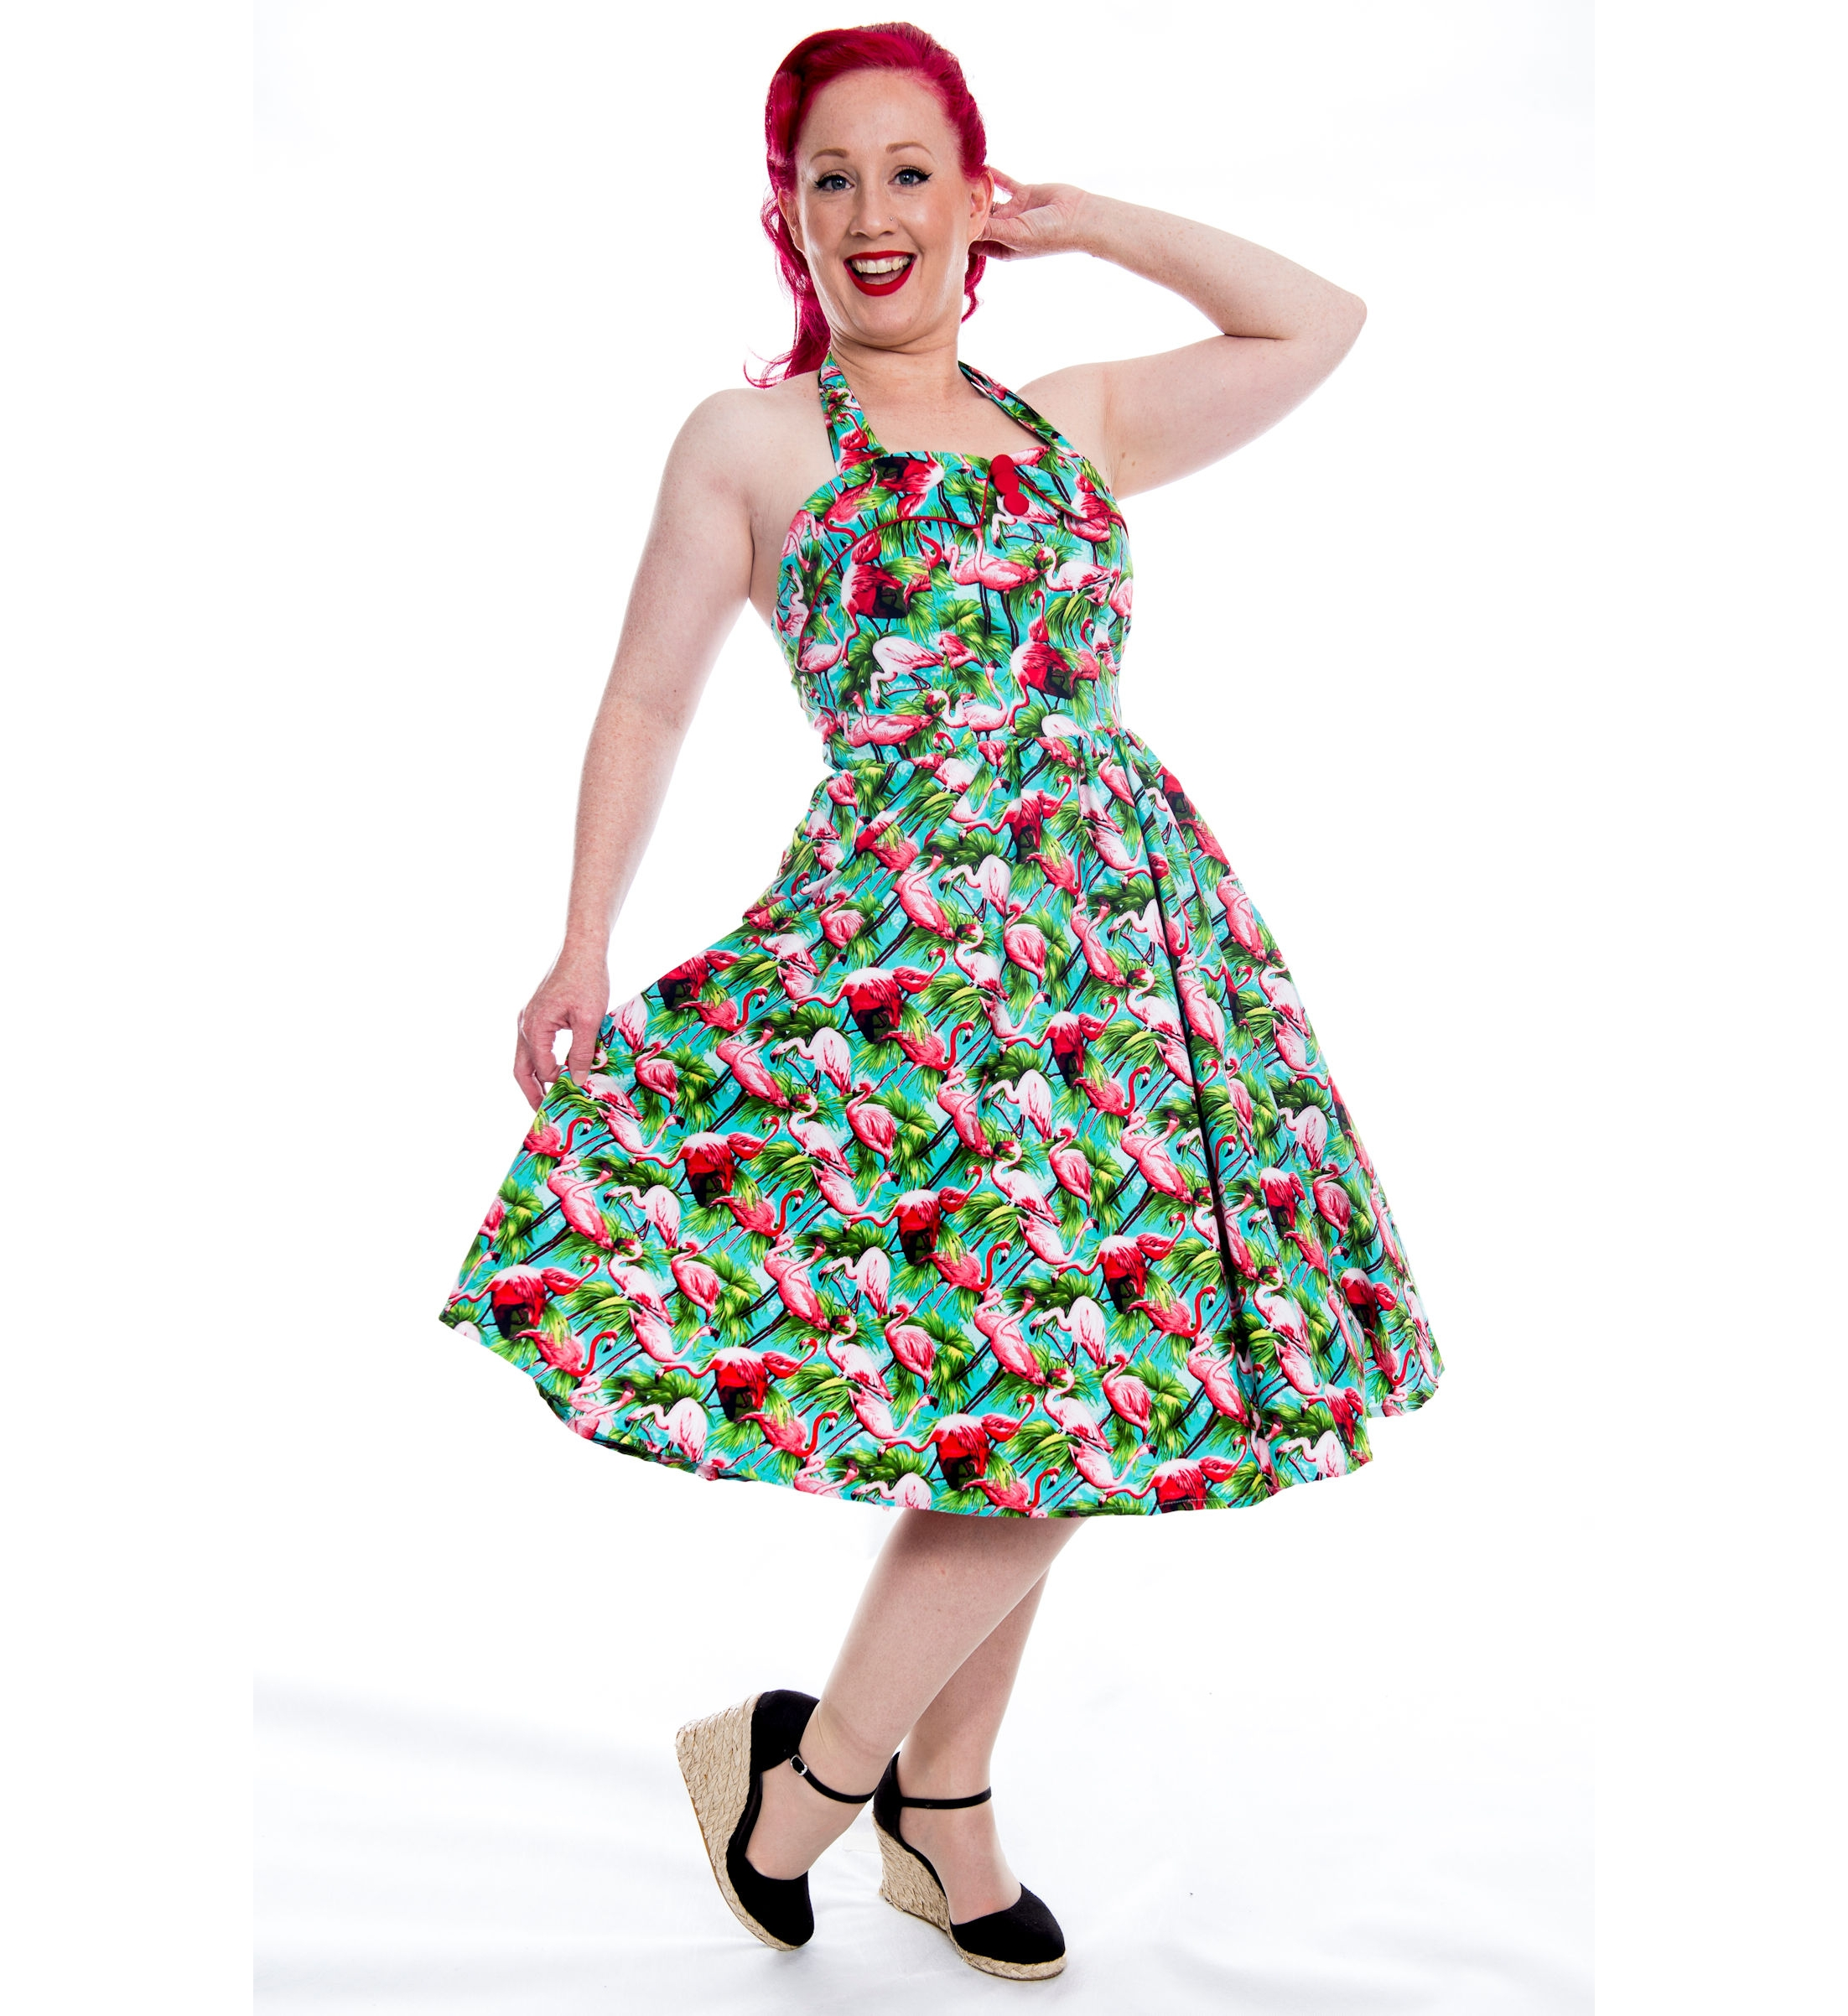 4e3c38a7e8ad8 Womens Clothing :: FlaminGo For It Rockabilly Kitsch Dress - + Inspired  Insanity + Clothing for 50s Rockabilly Dolls | Psychobilly Pinups | Vintage  Vixens ...